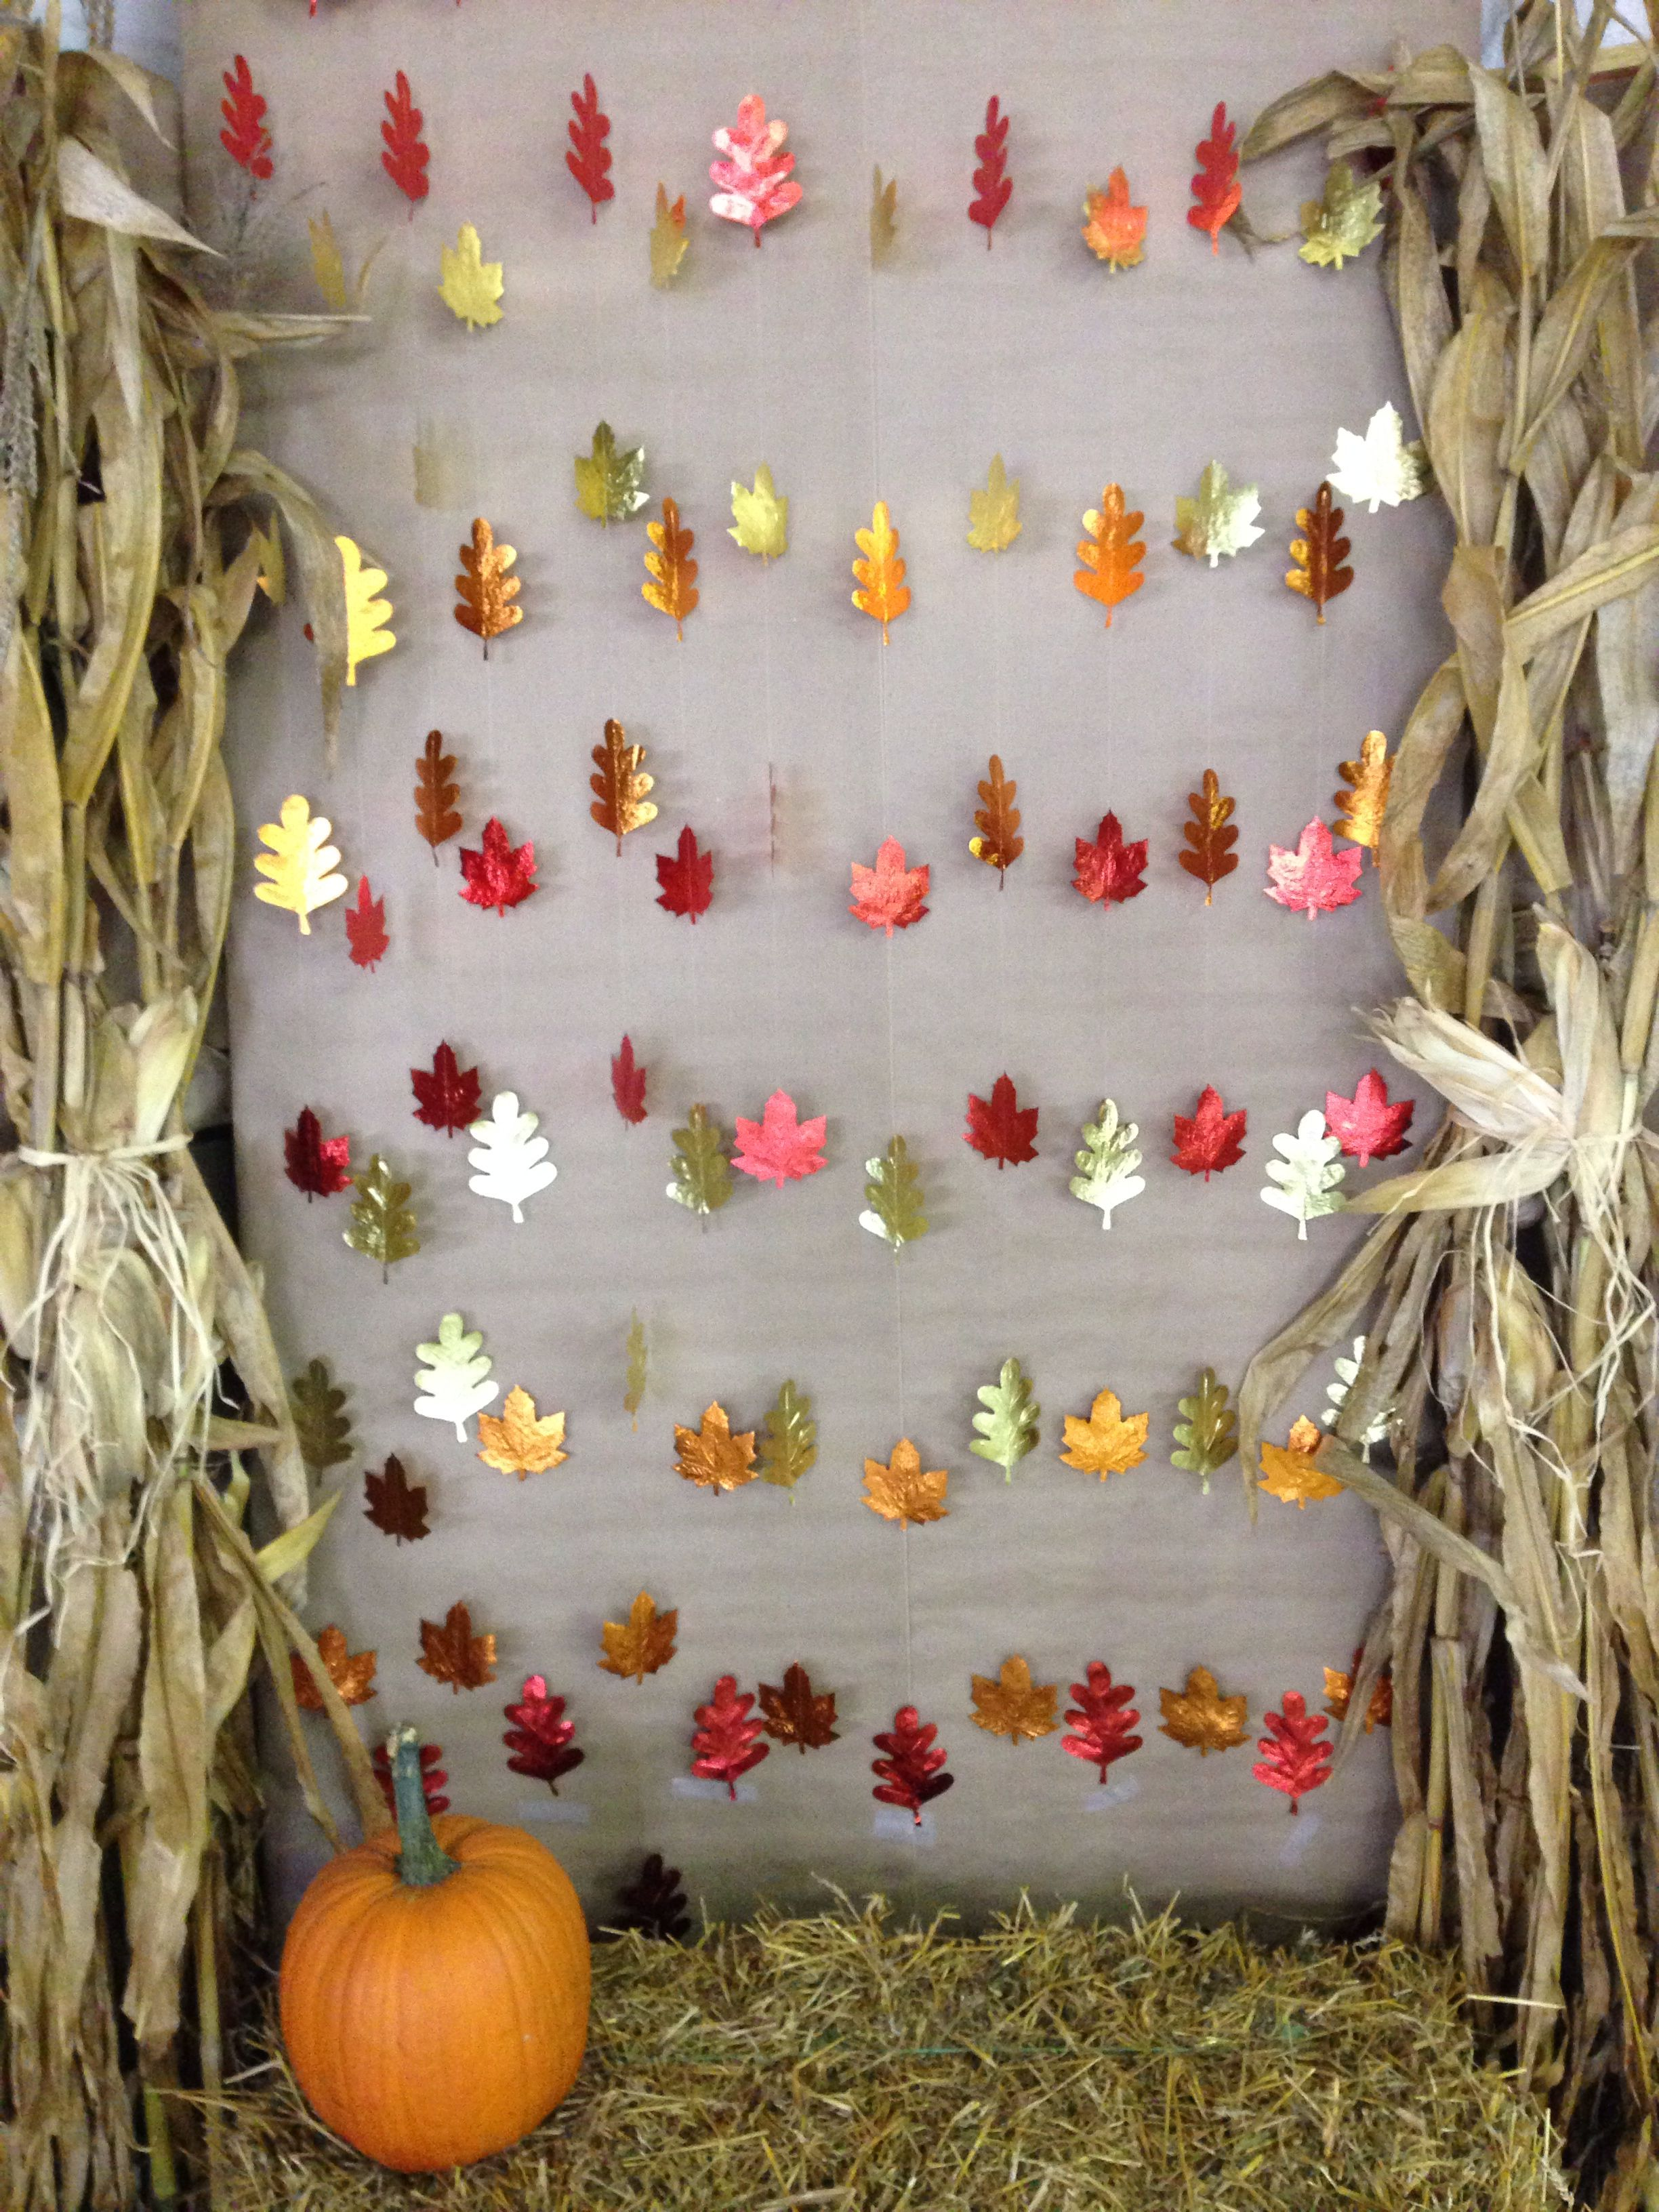 DIY Fall Photo Booth Backdrop for Halloween or ...